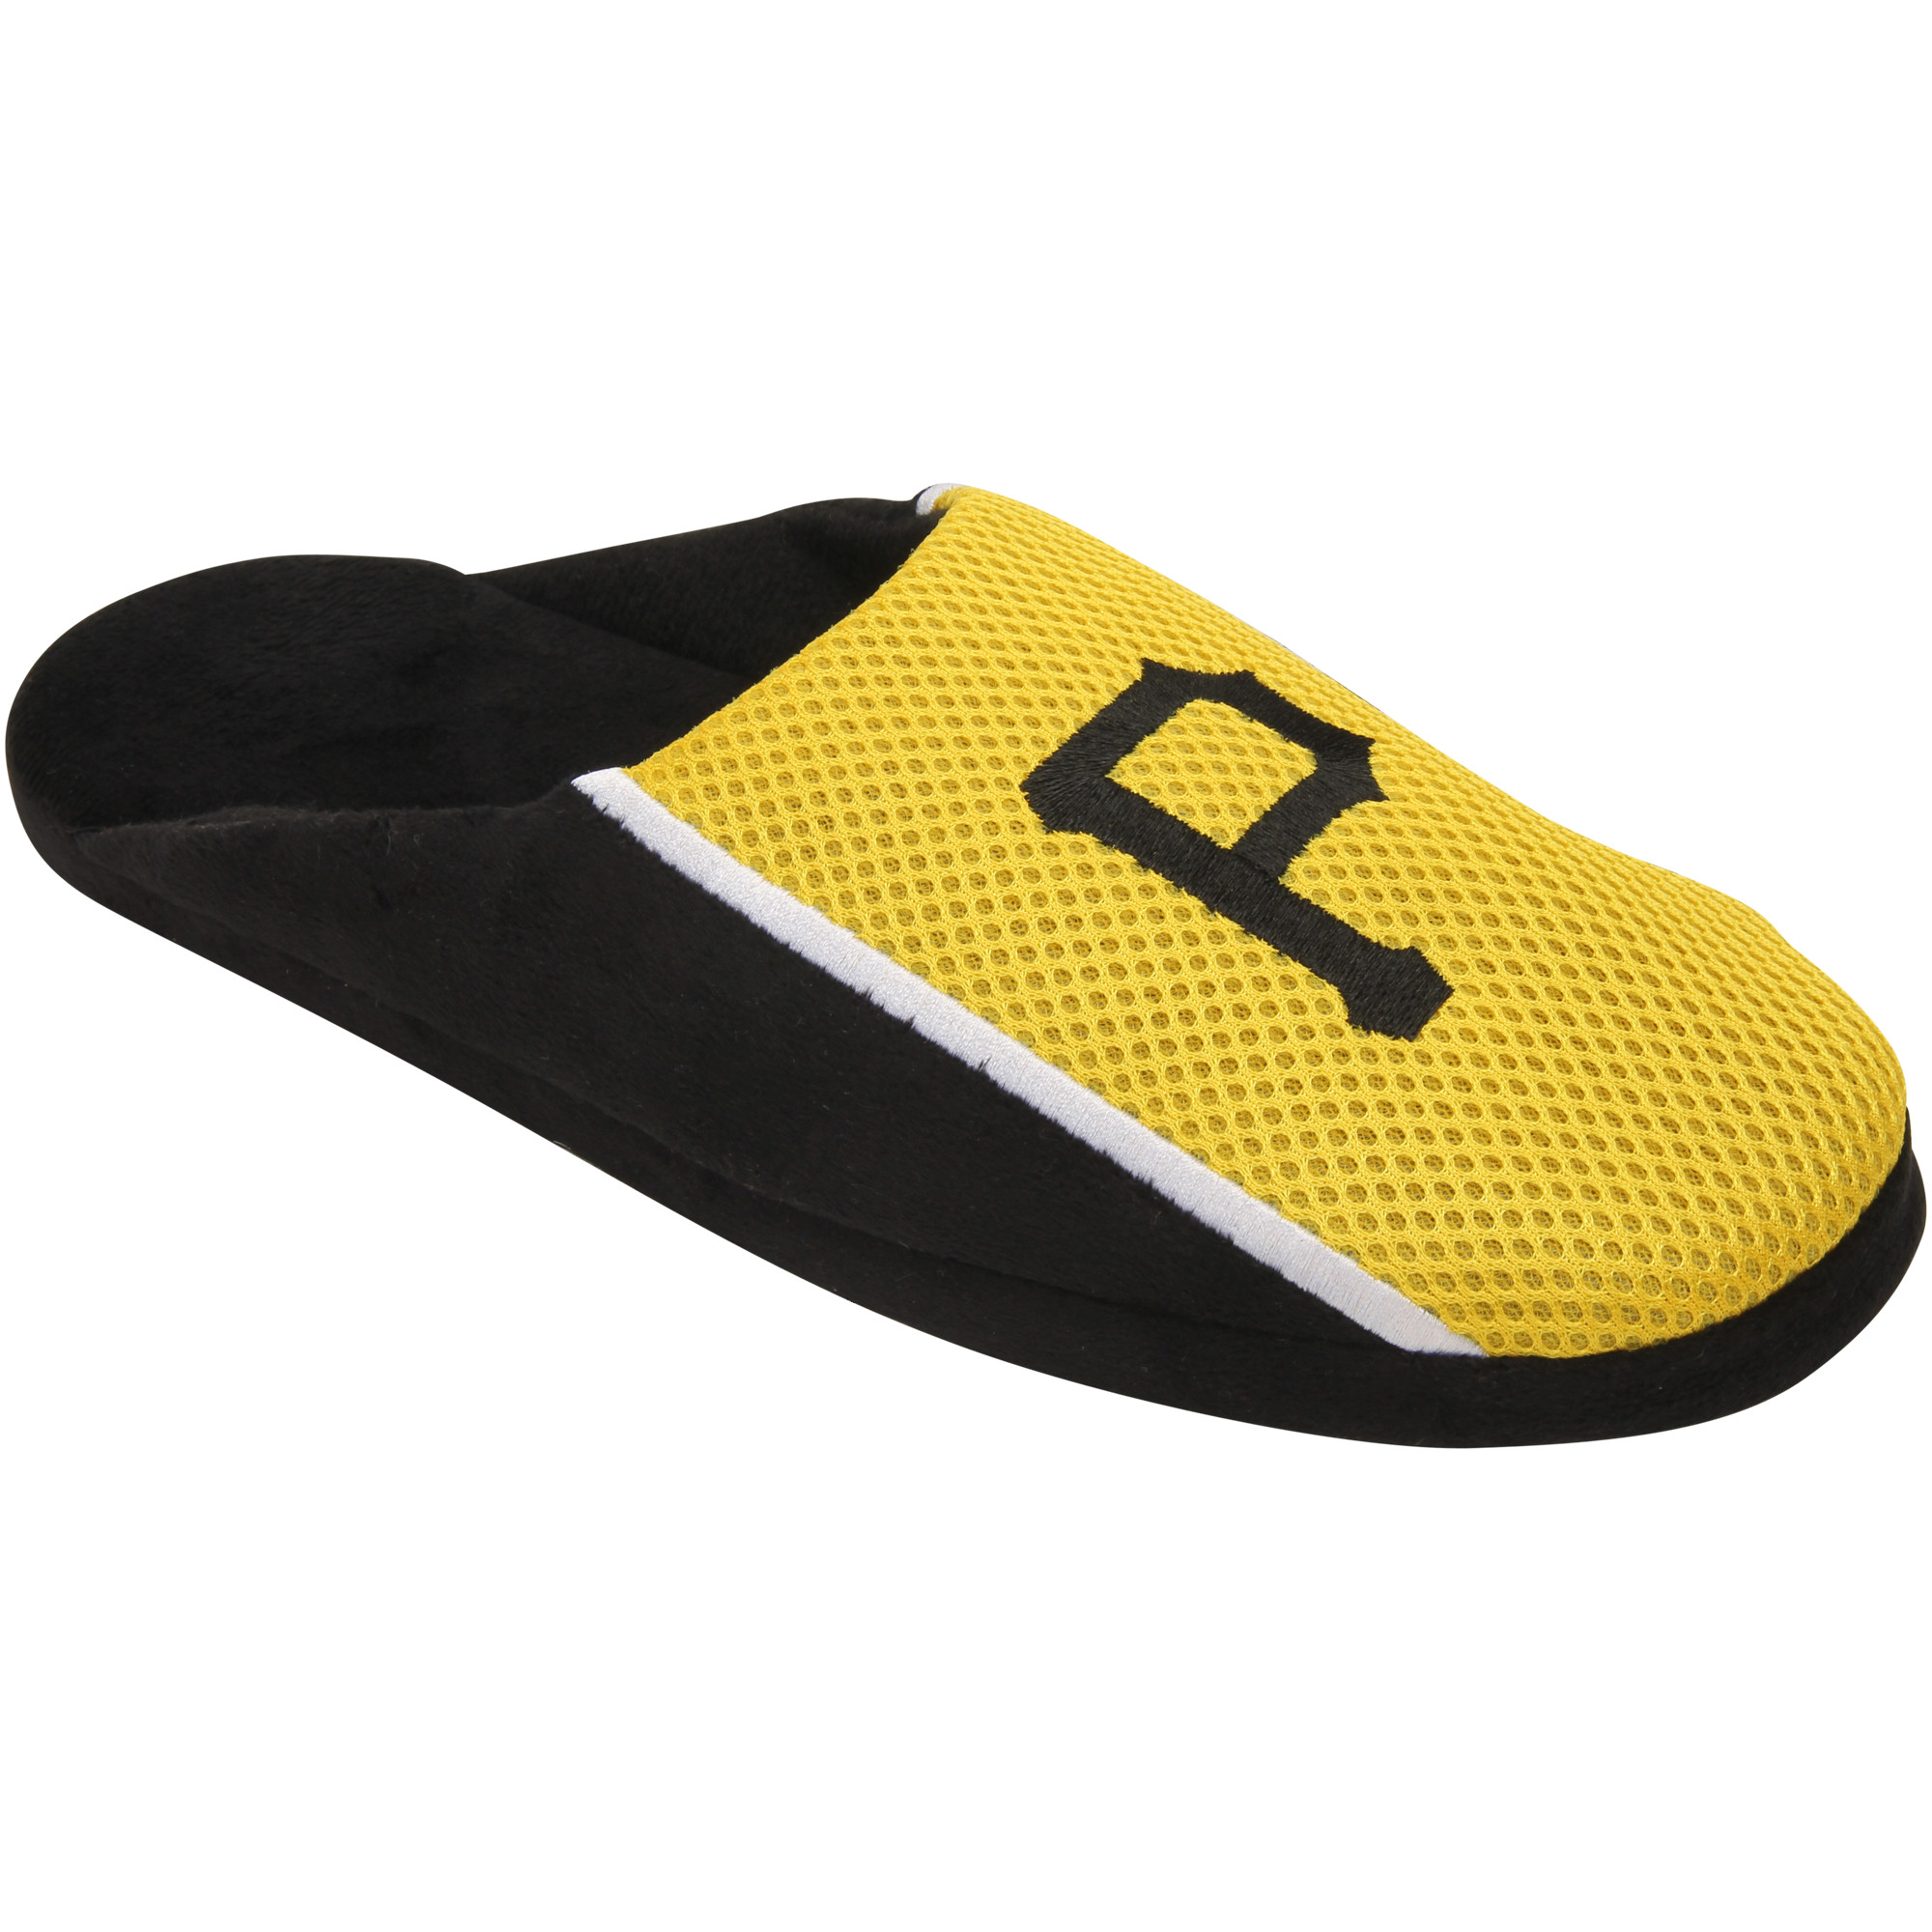 Pittsburgh Pirates Jersey Slide Slippers